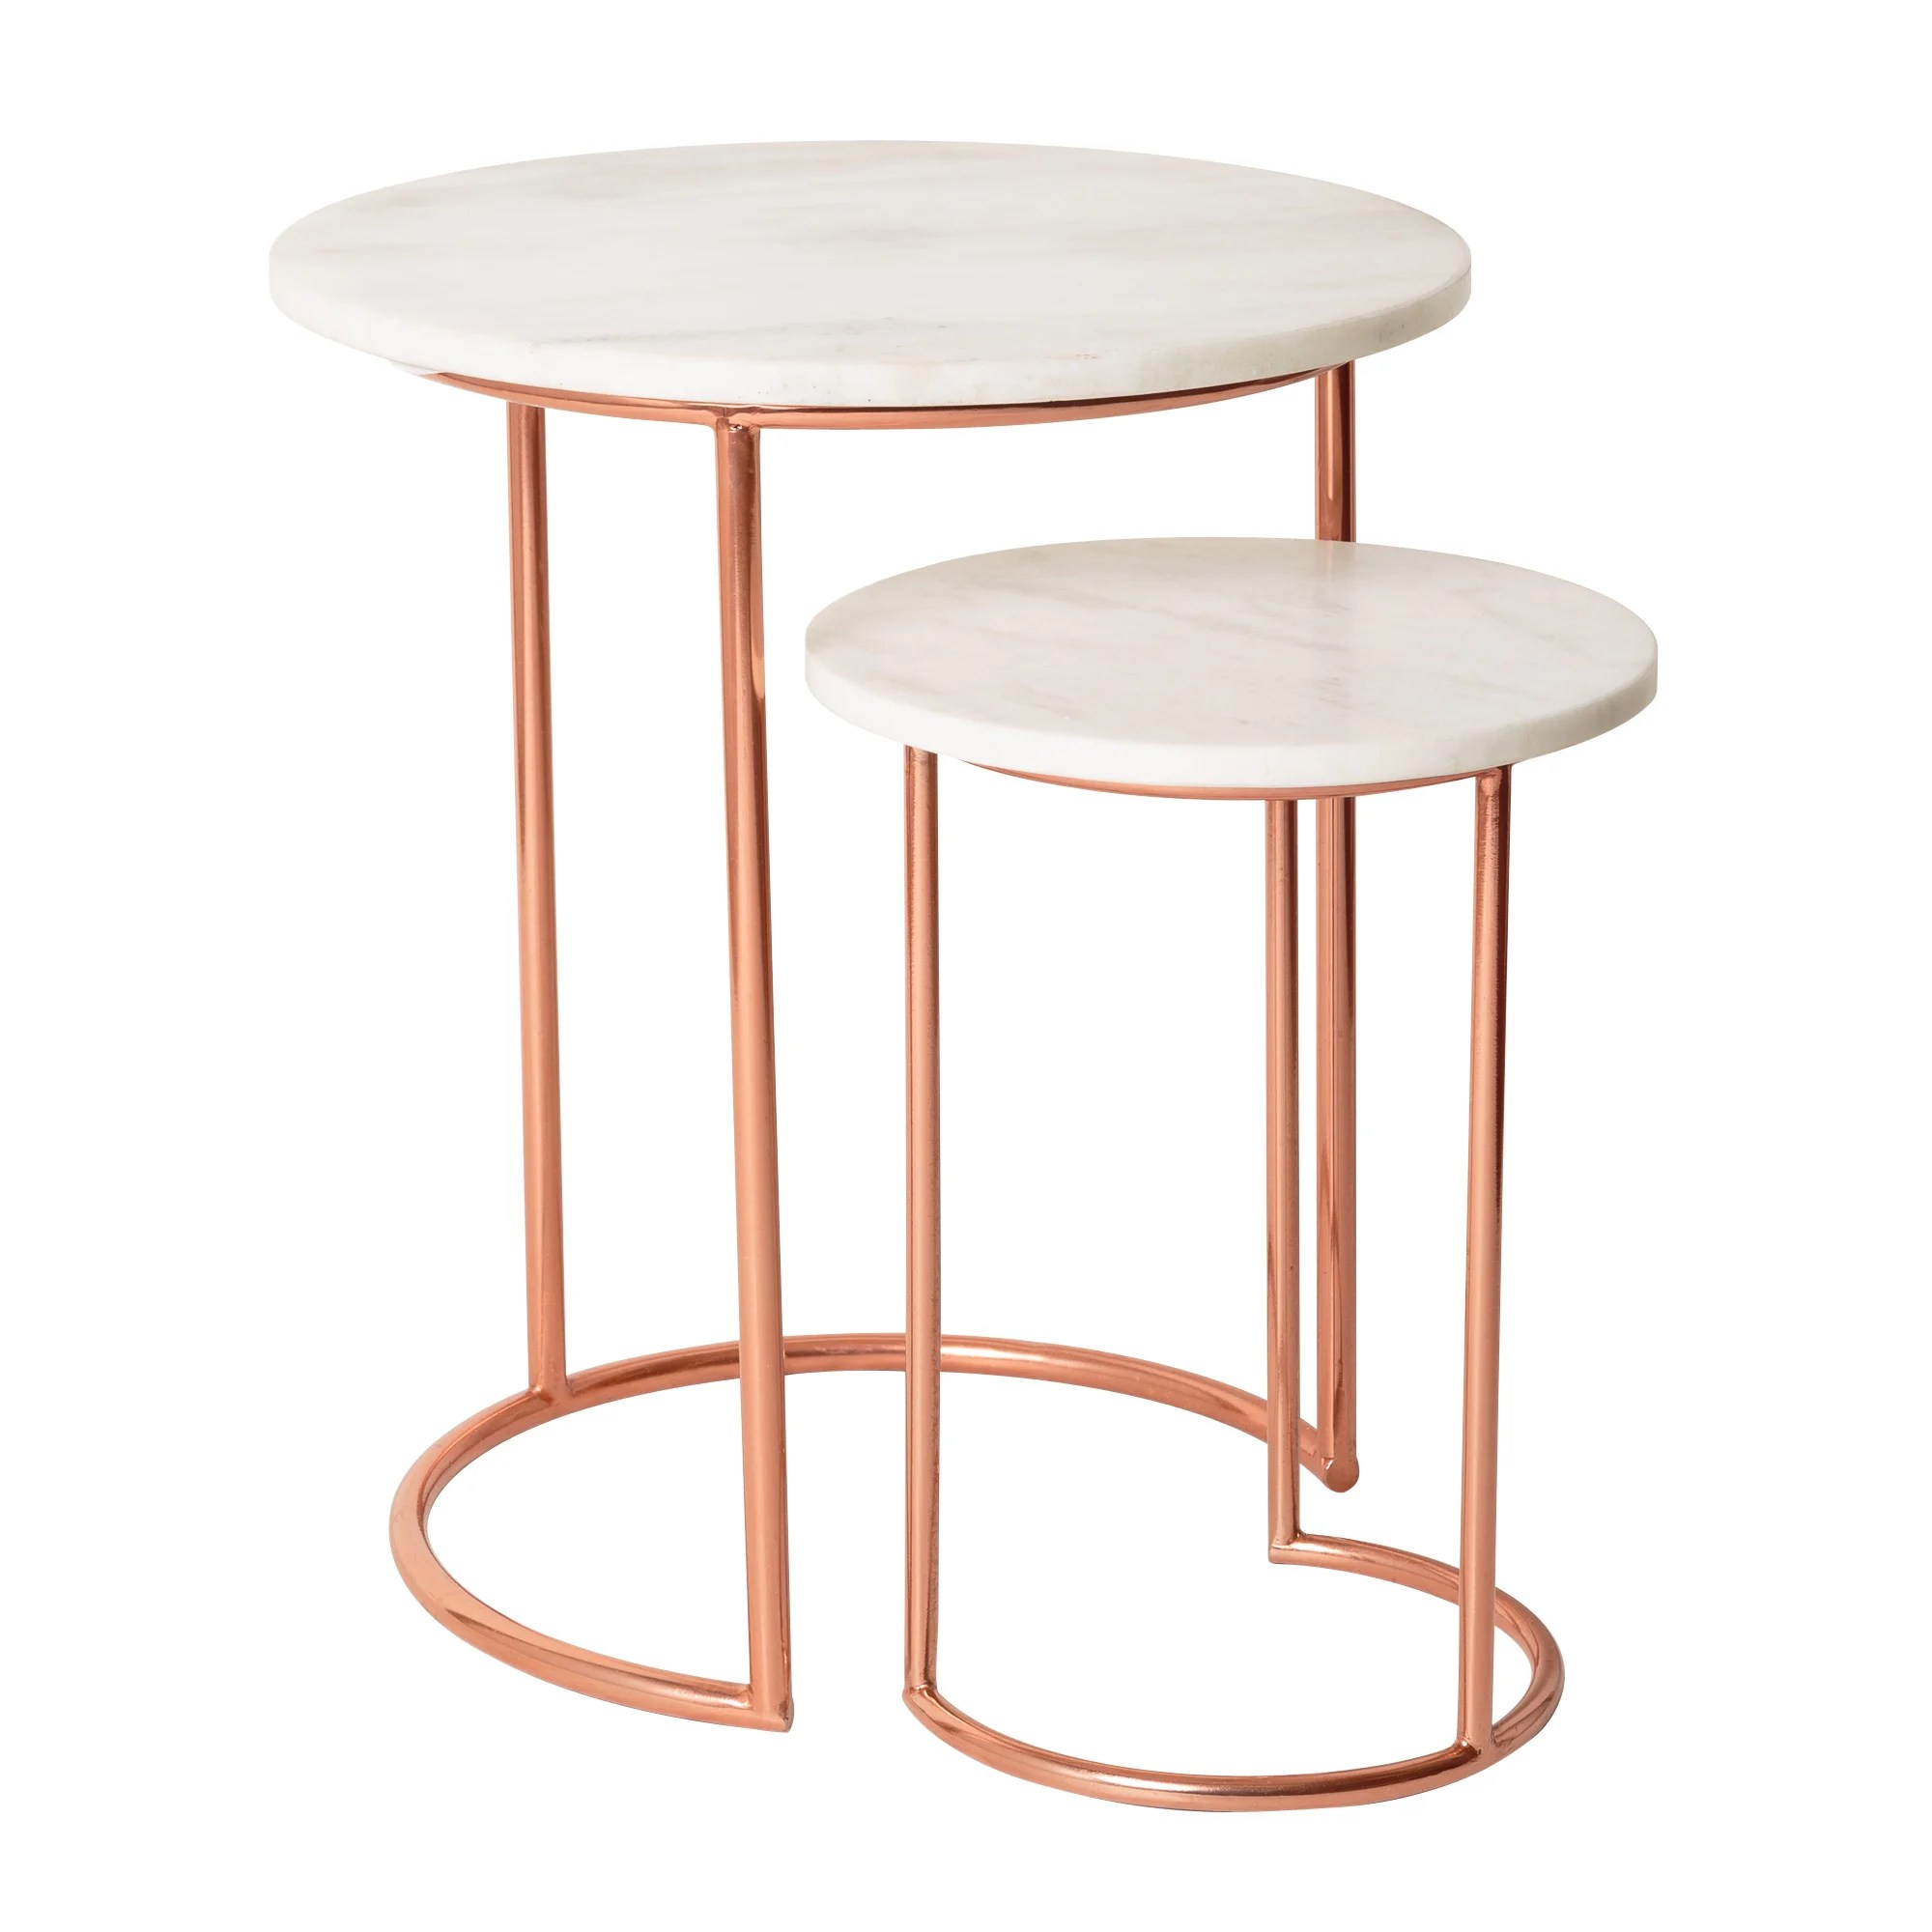 White Muse Marble  Copper Nesting Tables  Oliver Bonas